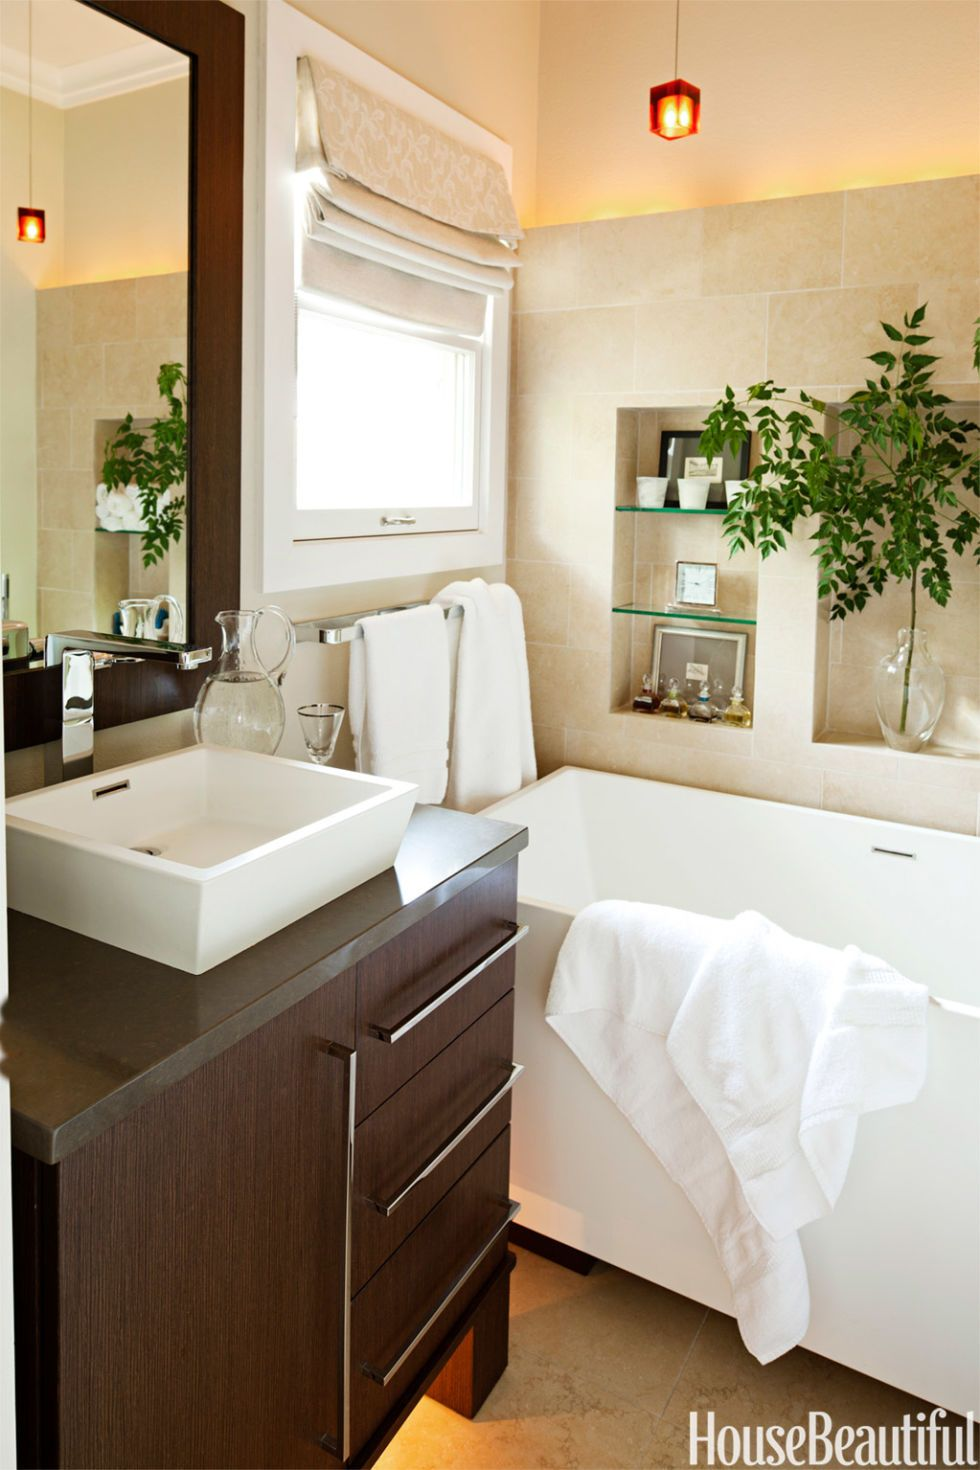 Designing a Hotel-Like Bathroom in 42 Square Feet